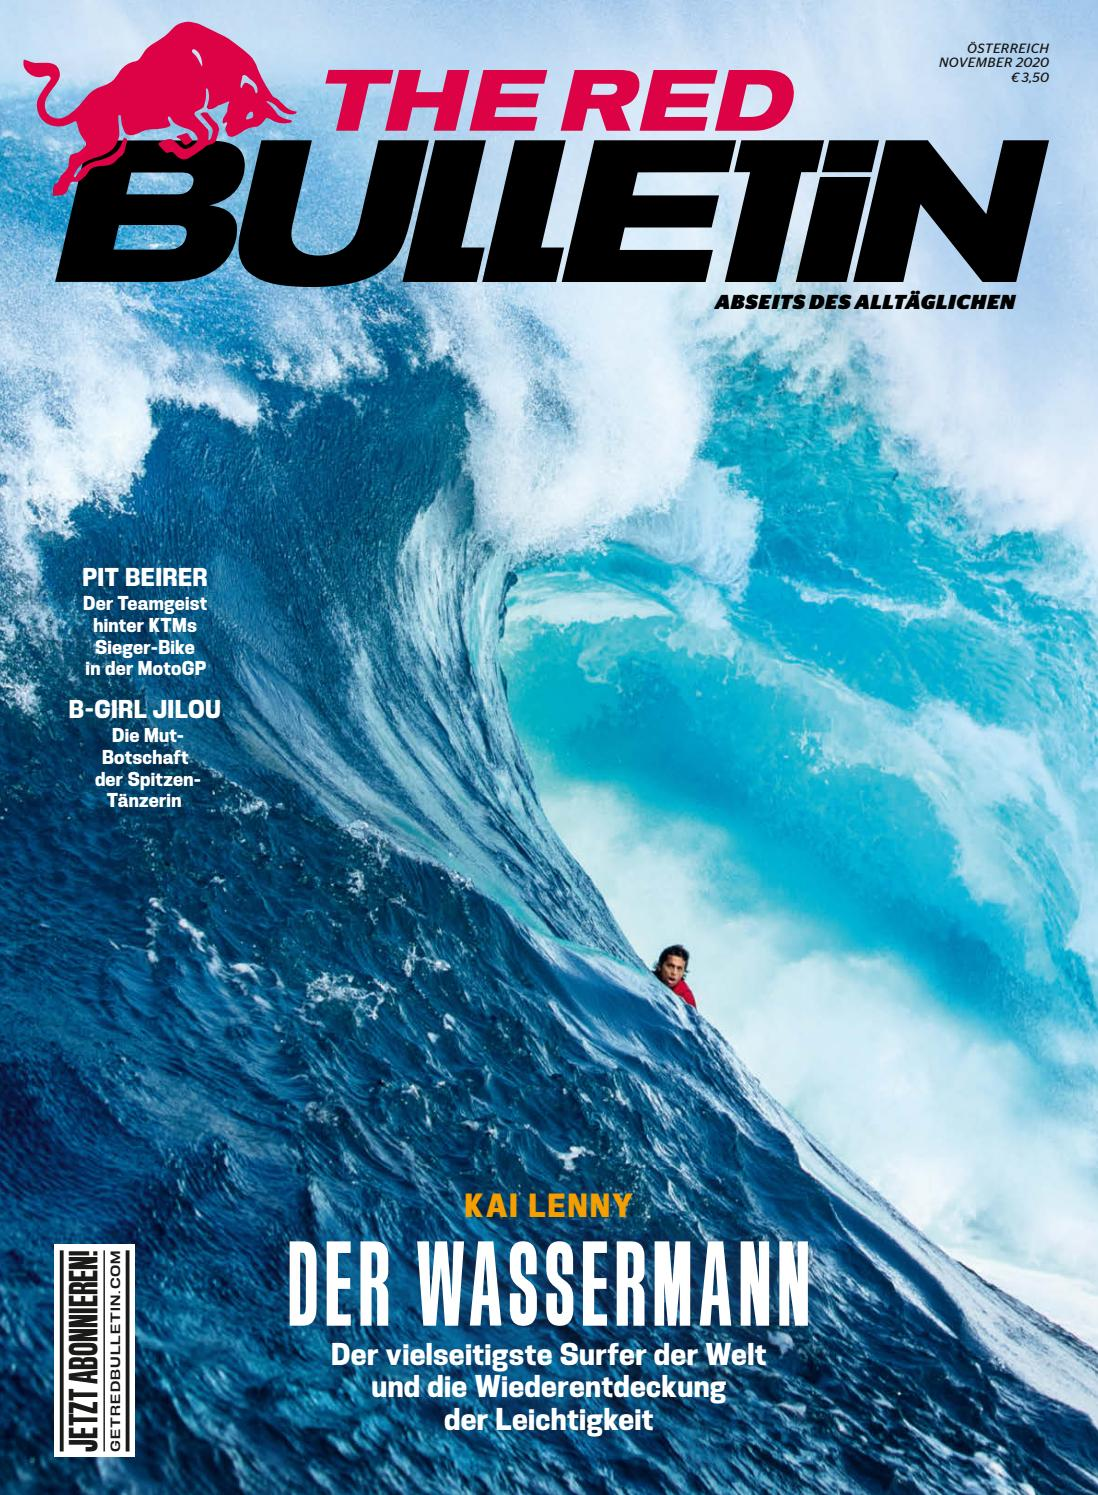 The Red Bulletin At 11 20 By Red Bull Media House Issuu